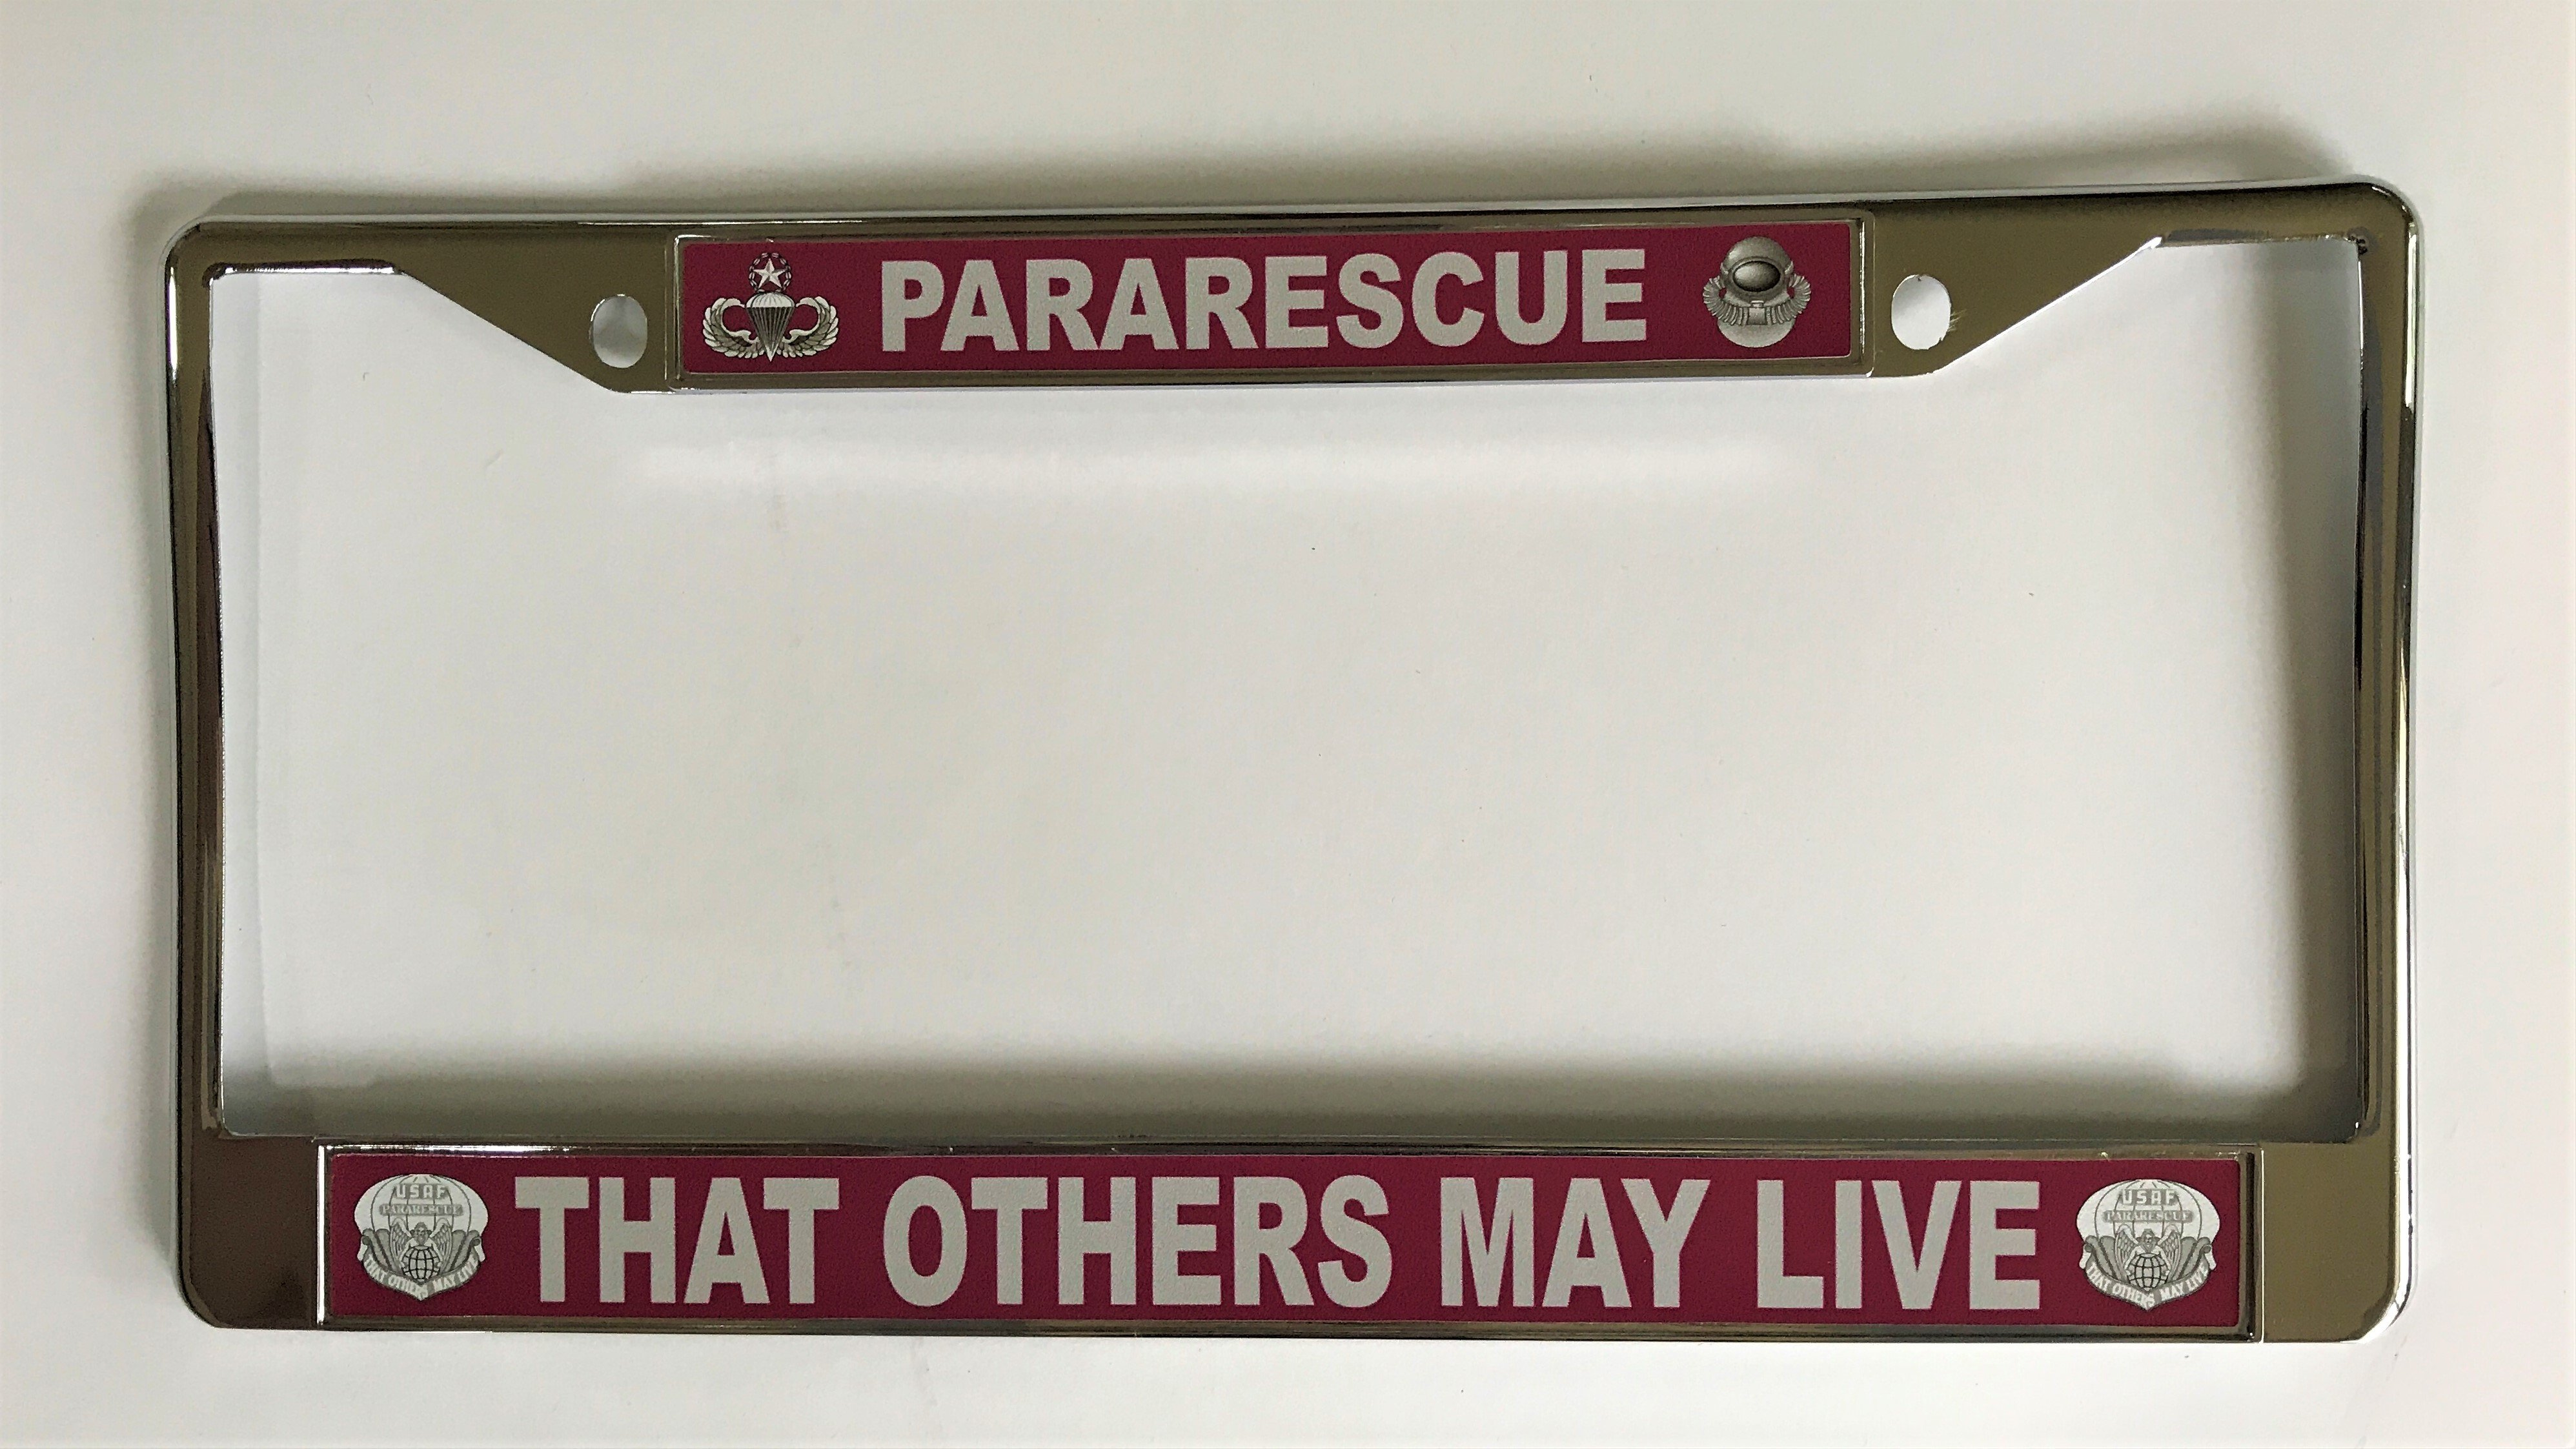 pja/ Pararescue License Plate Frame 01-0016